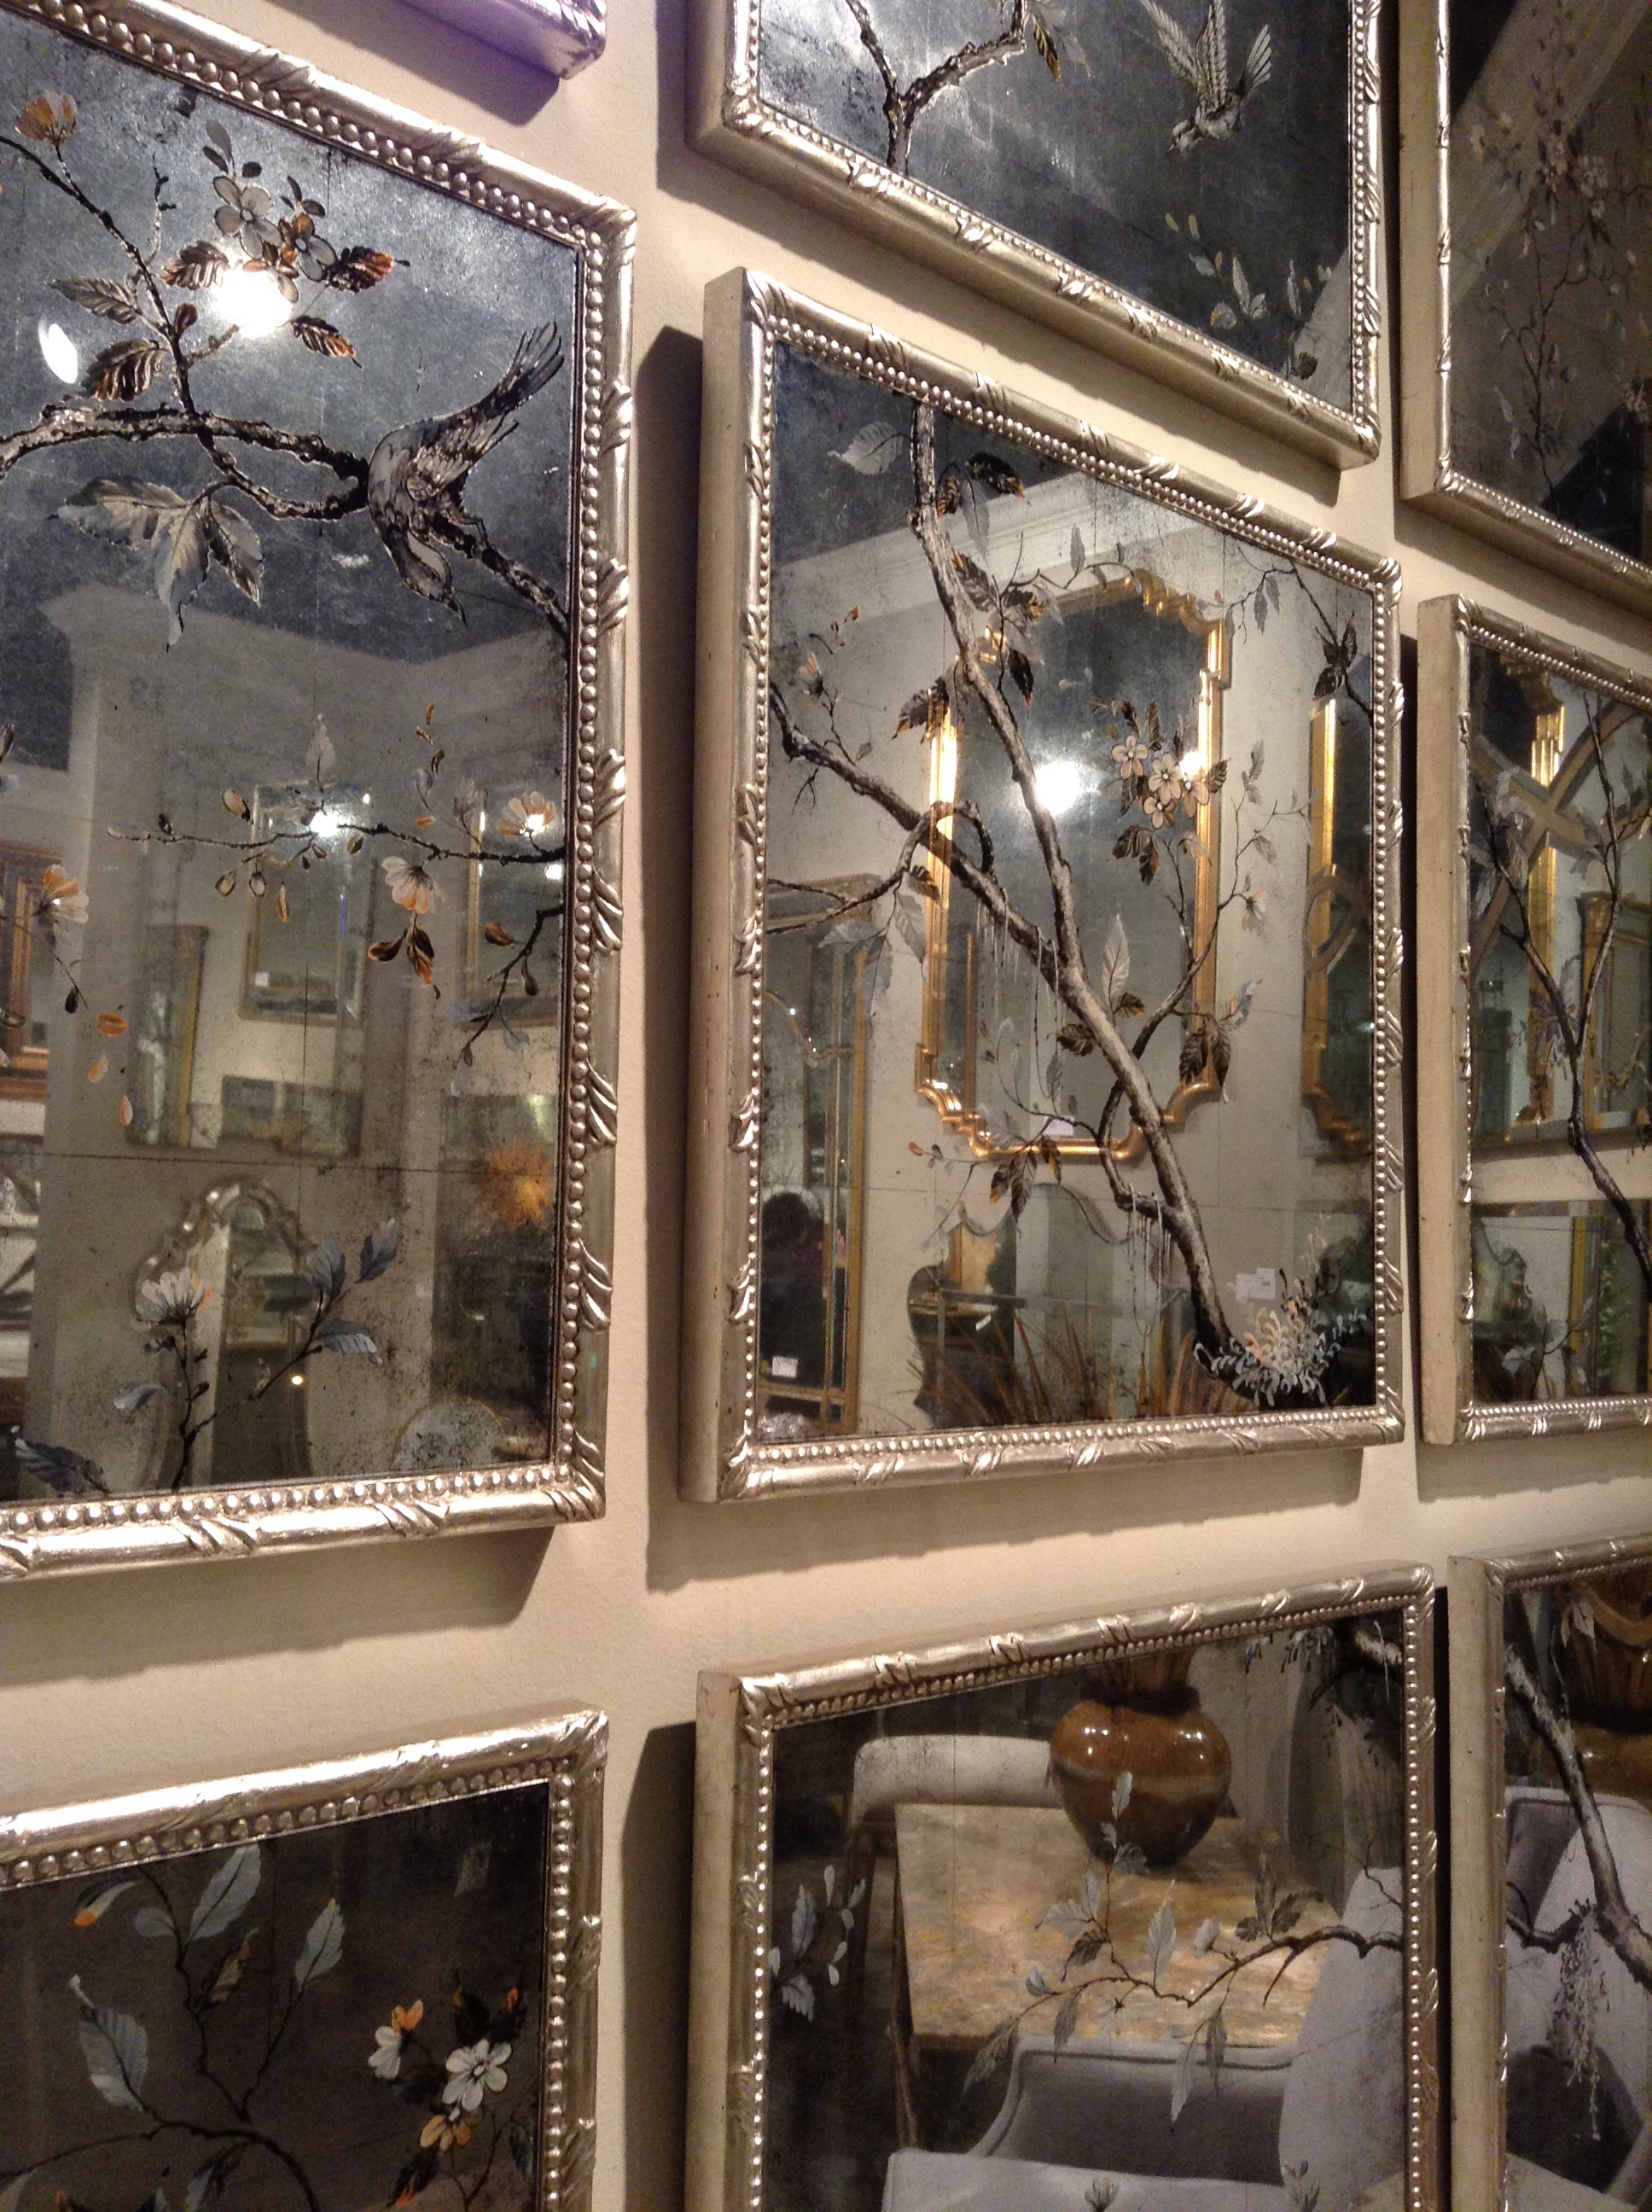 Pictures of some of the larger mirrors in the john richard collection